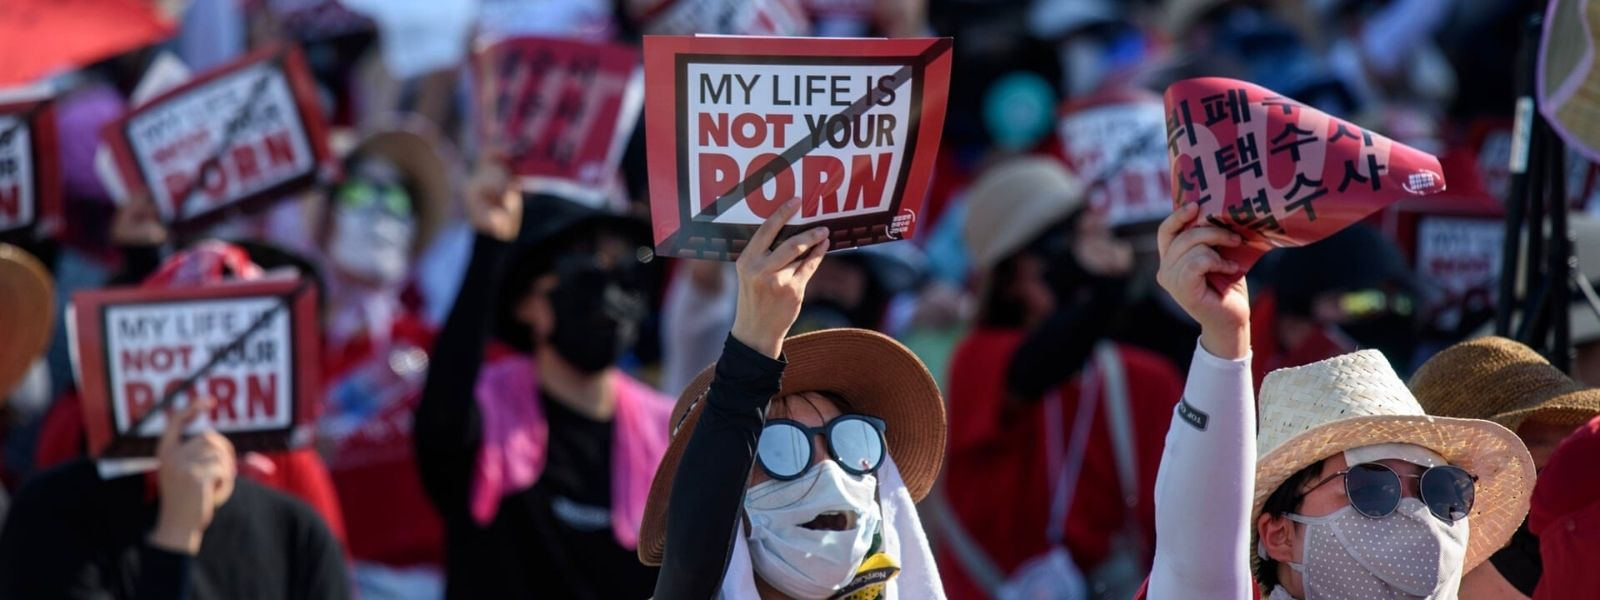 my life is not your porn